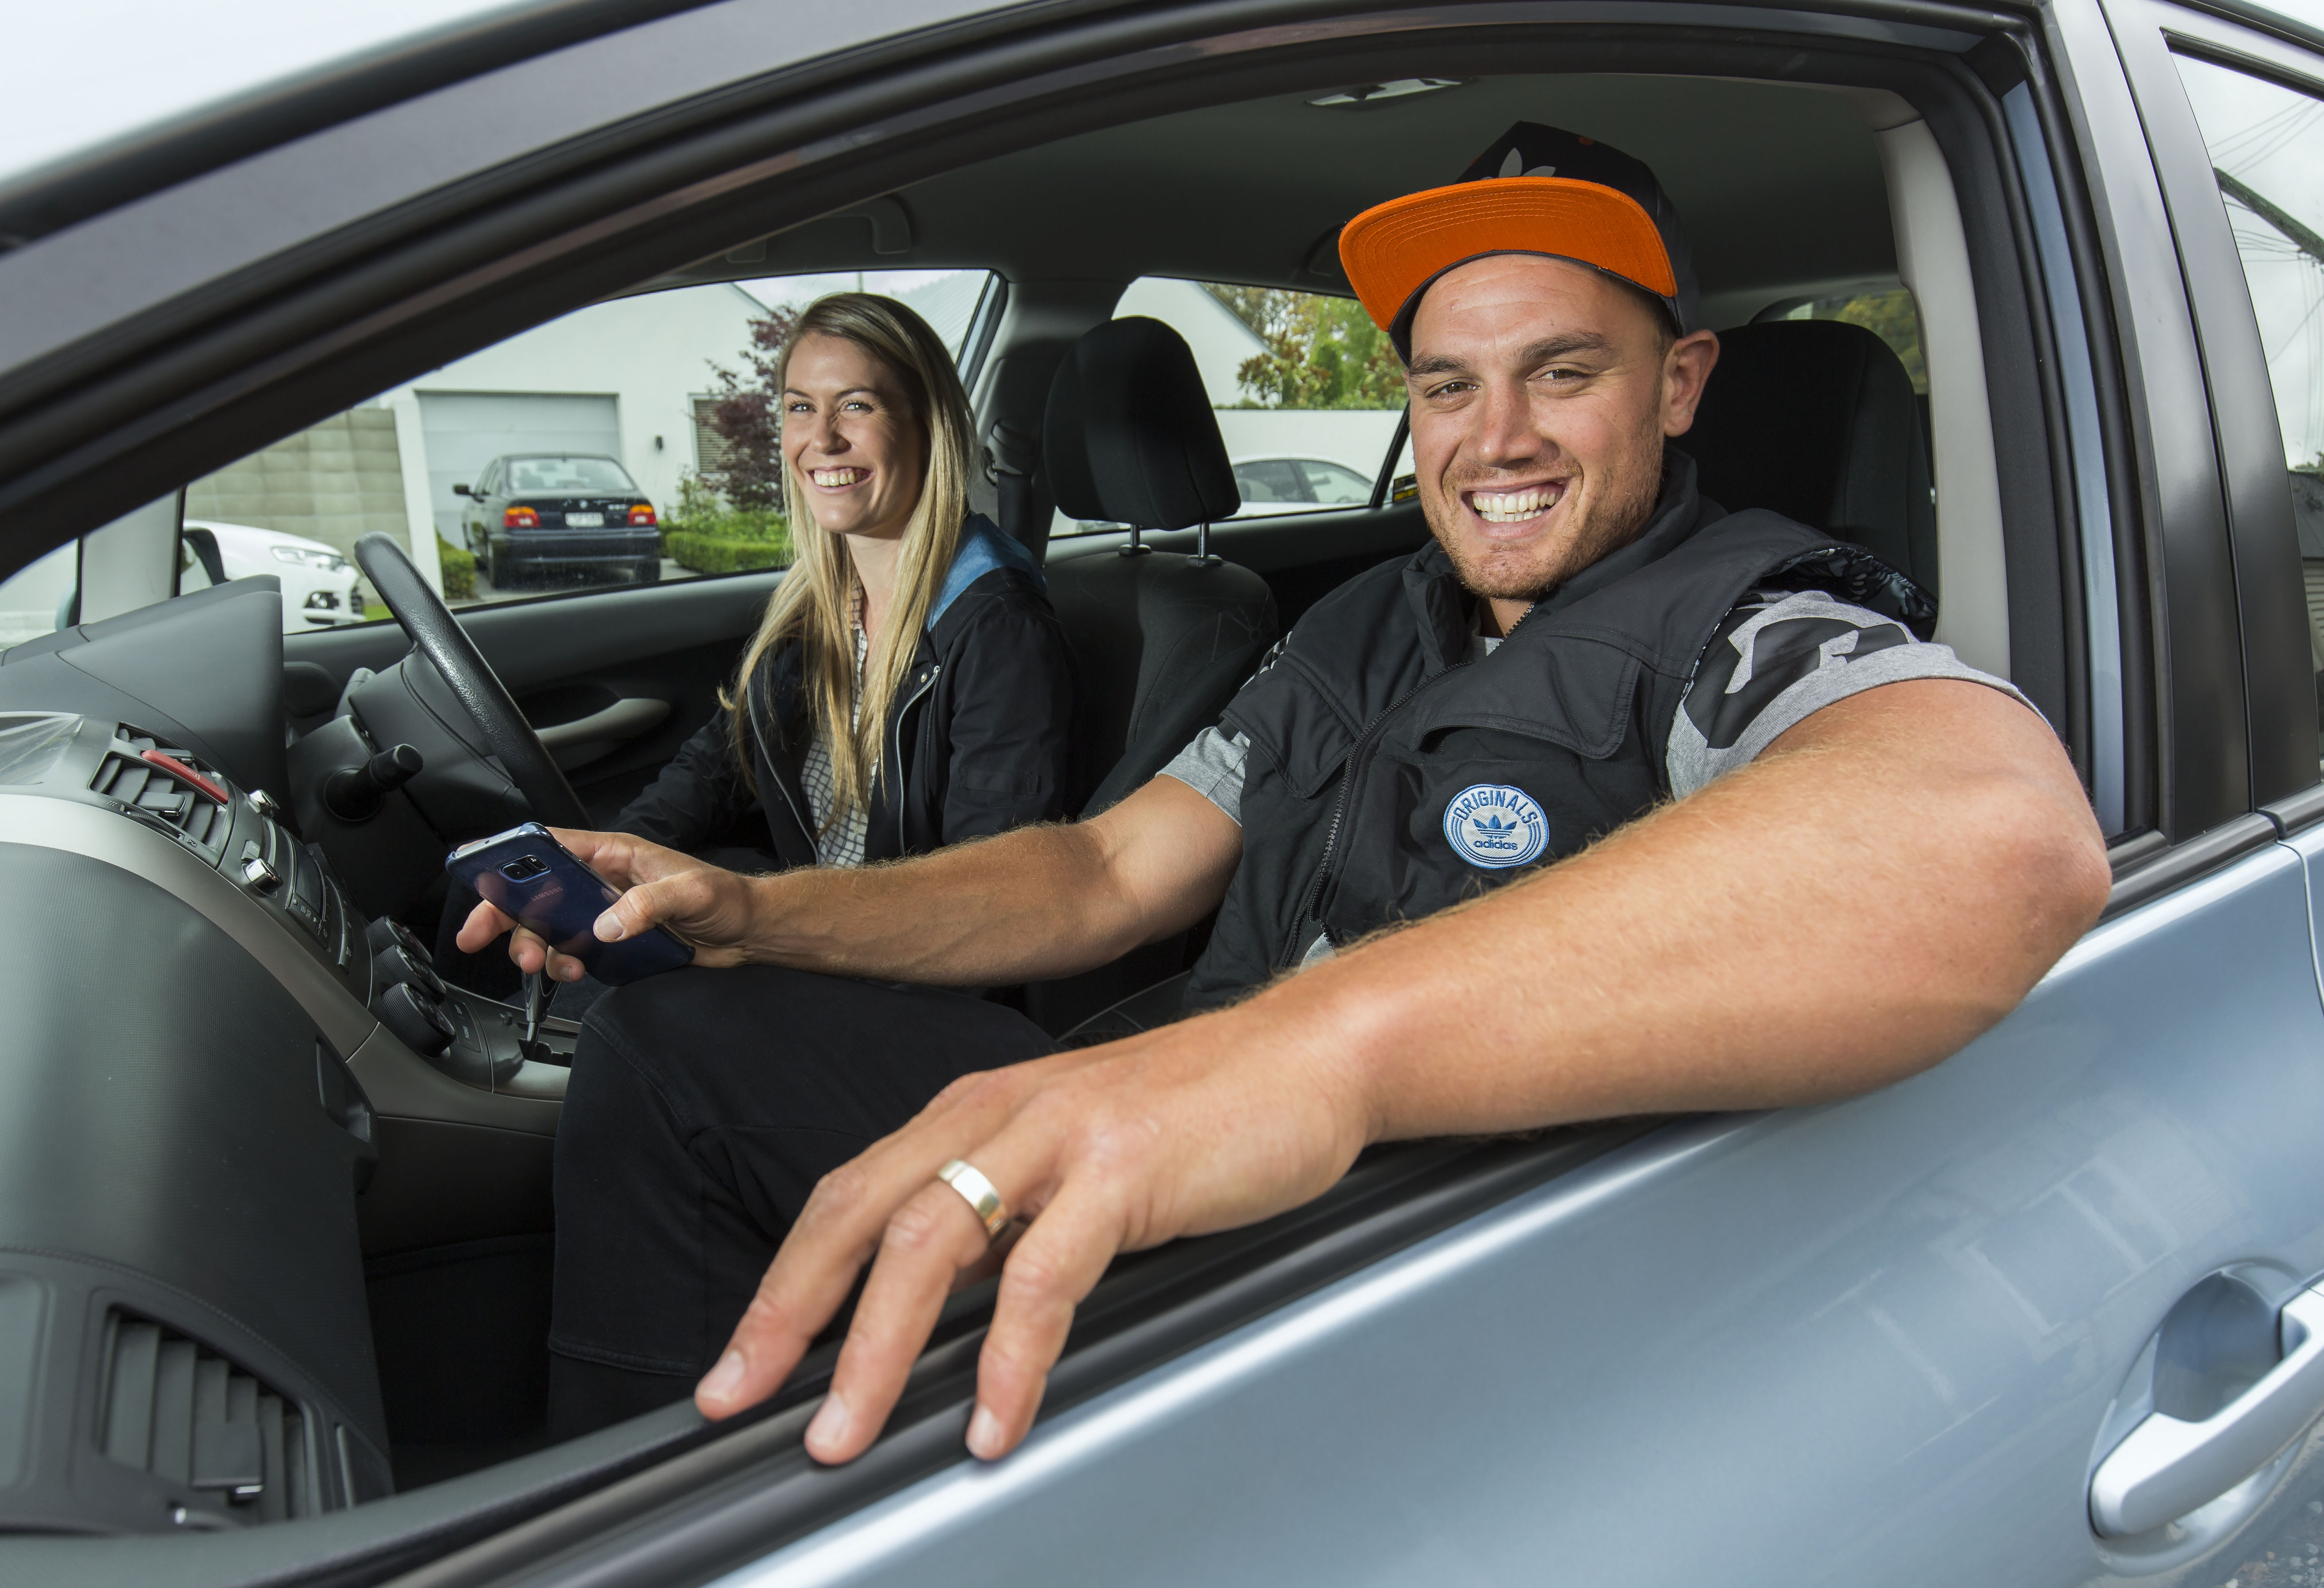 Christchurch, ridesharing is arriving now.